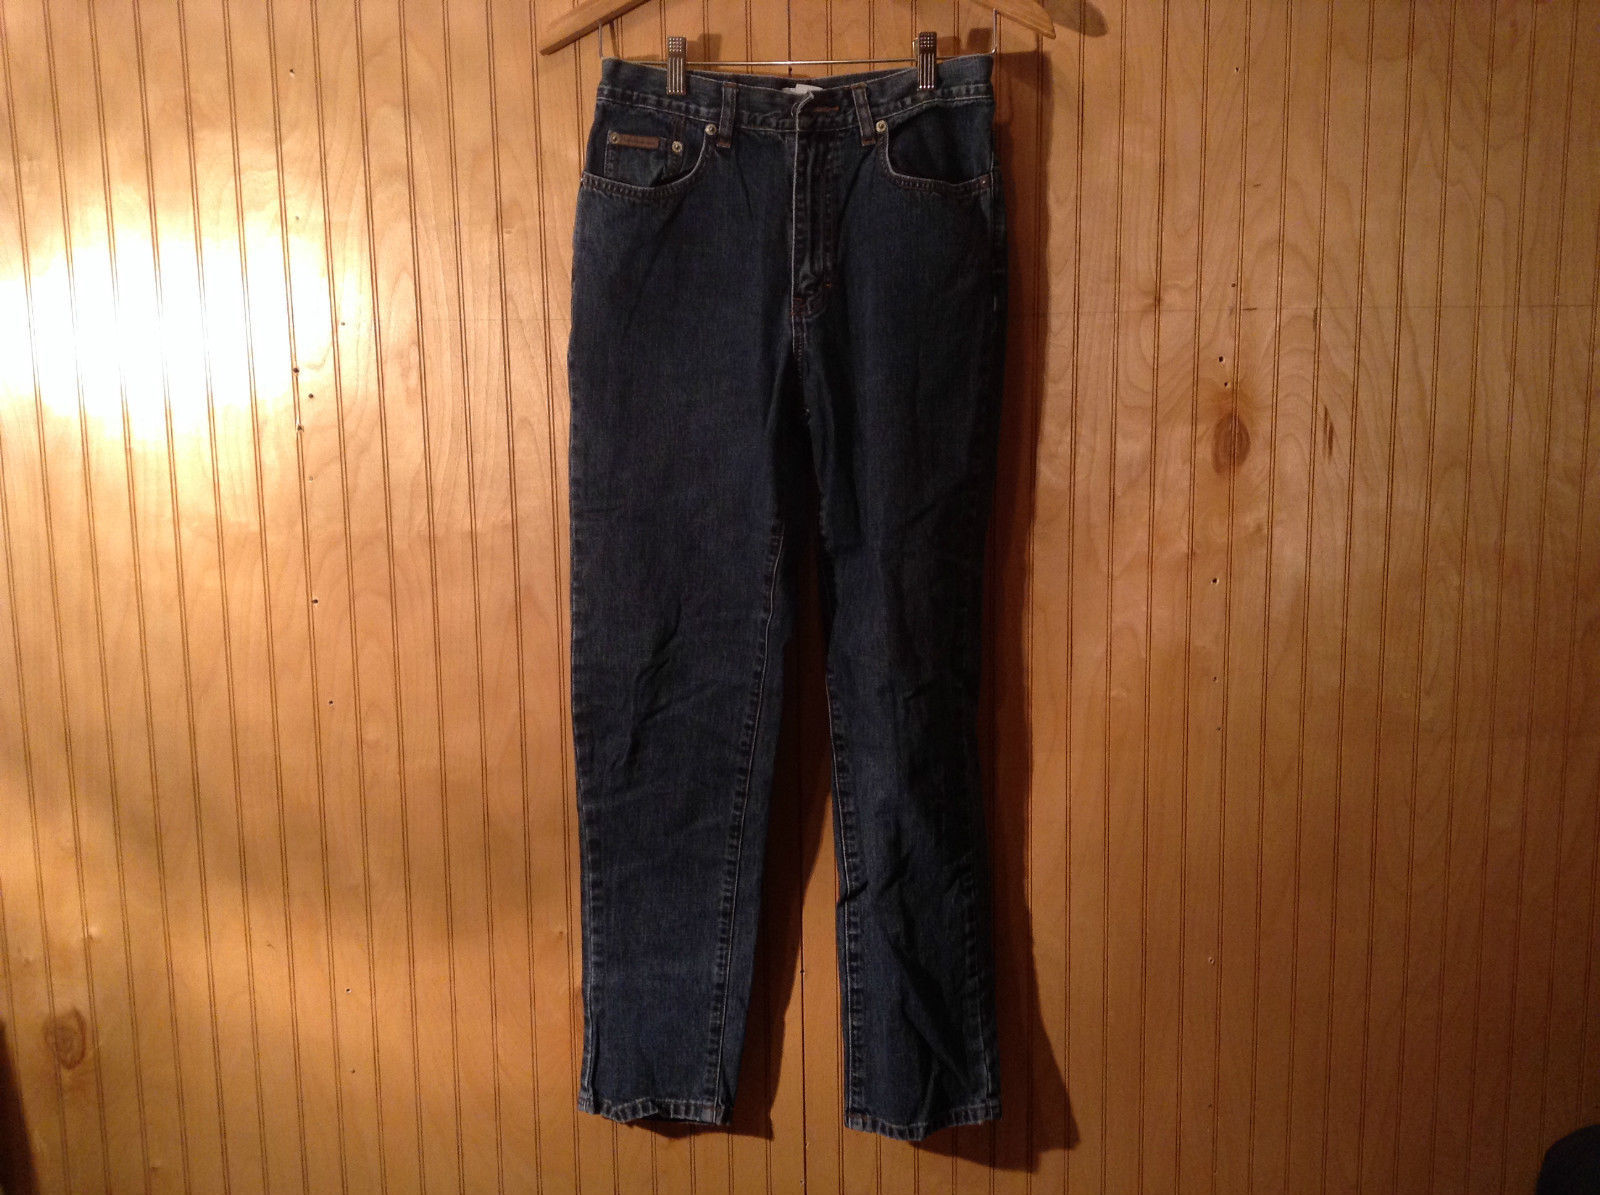 Calvin Klein Dark Denim Jeans Front and Back Pockets Size 6 Very Good Condition